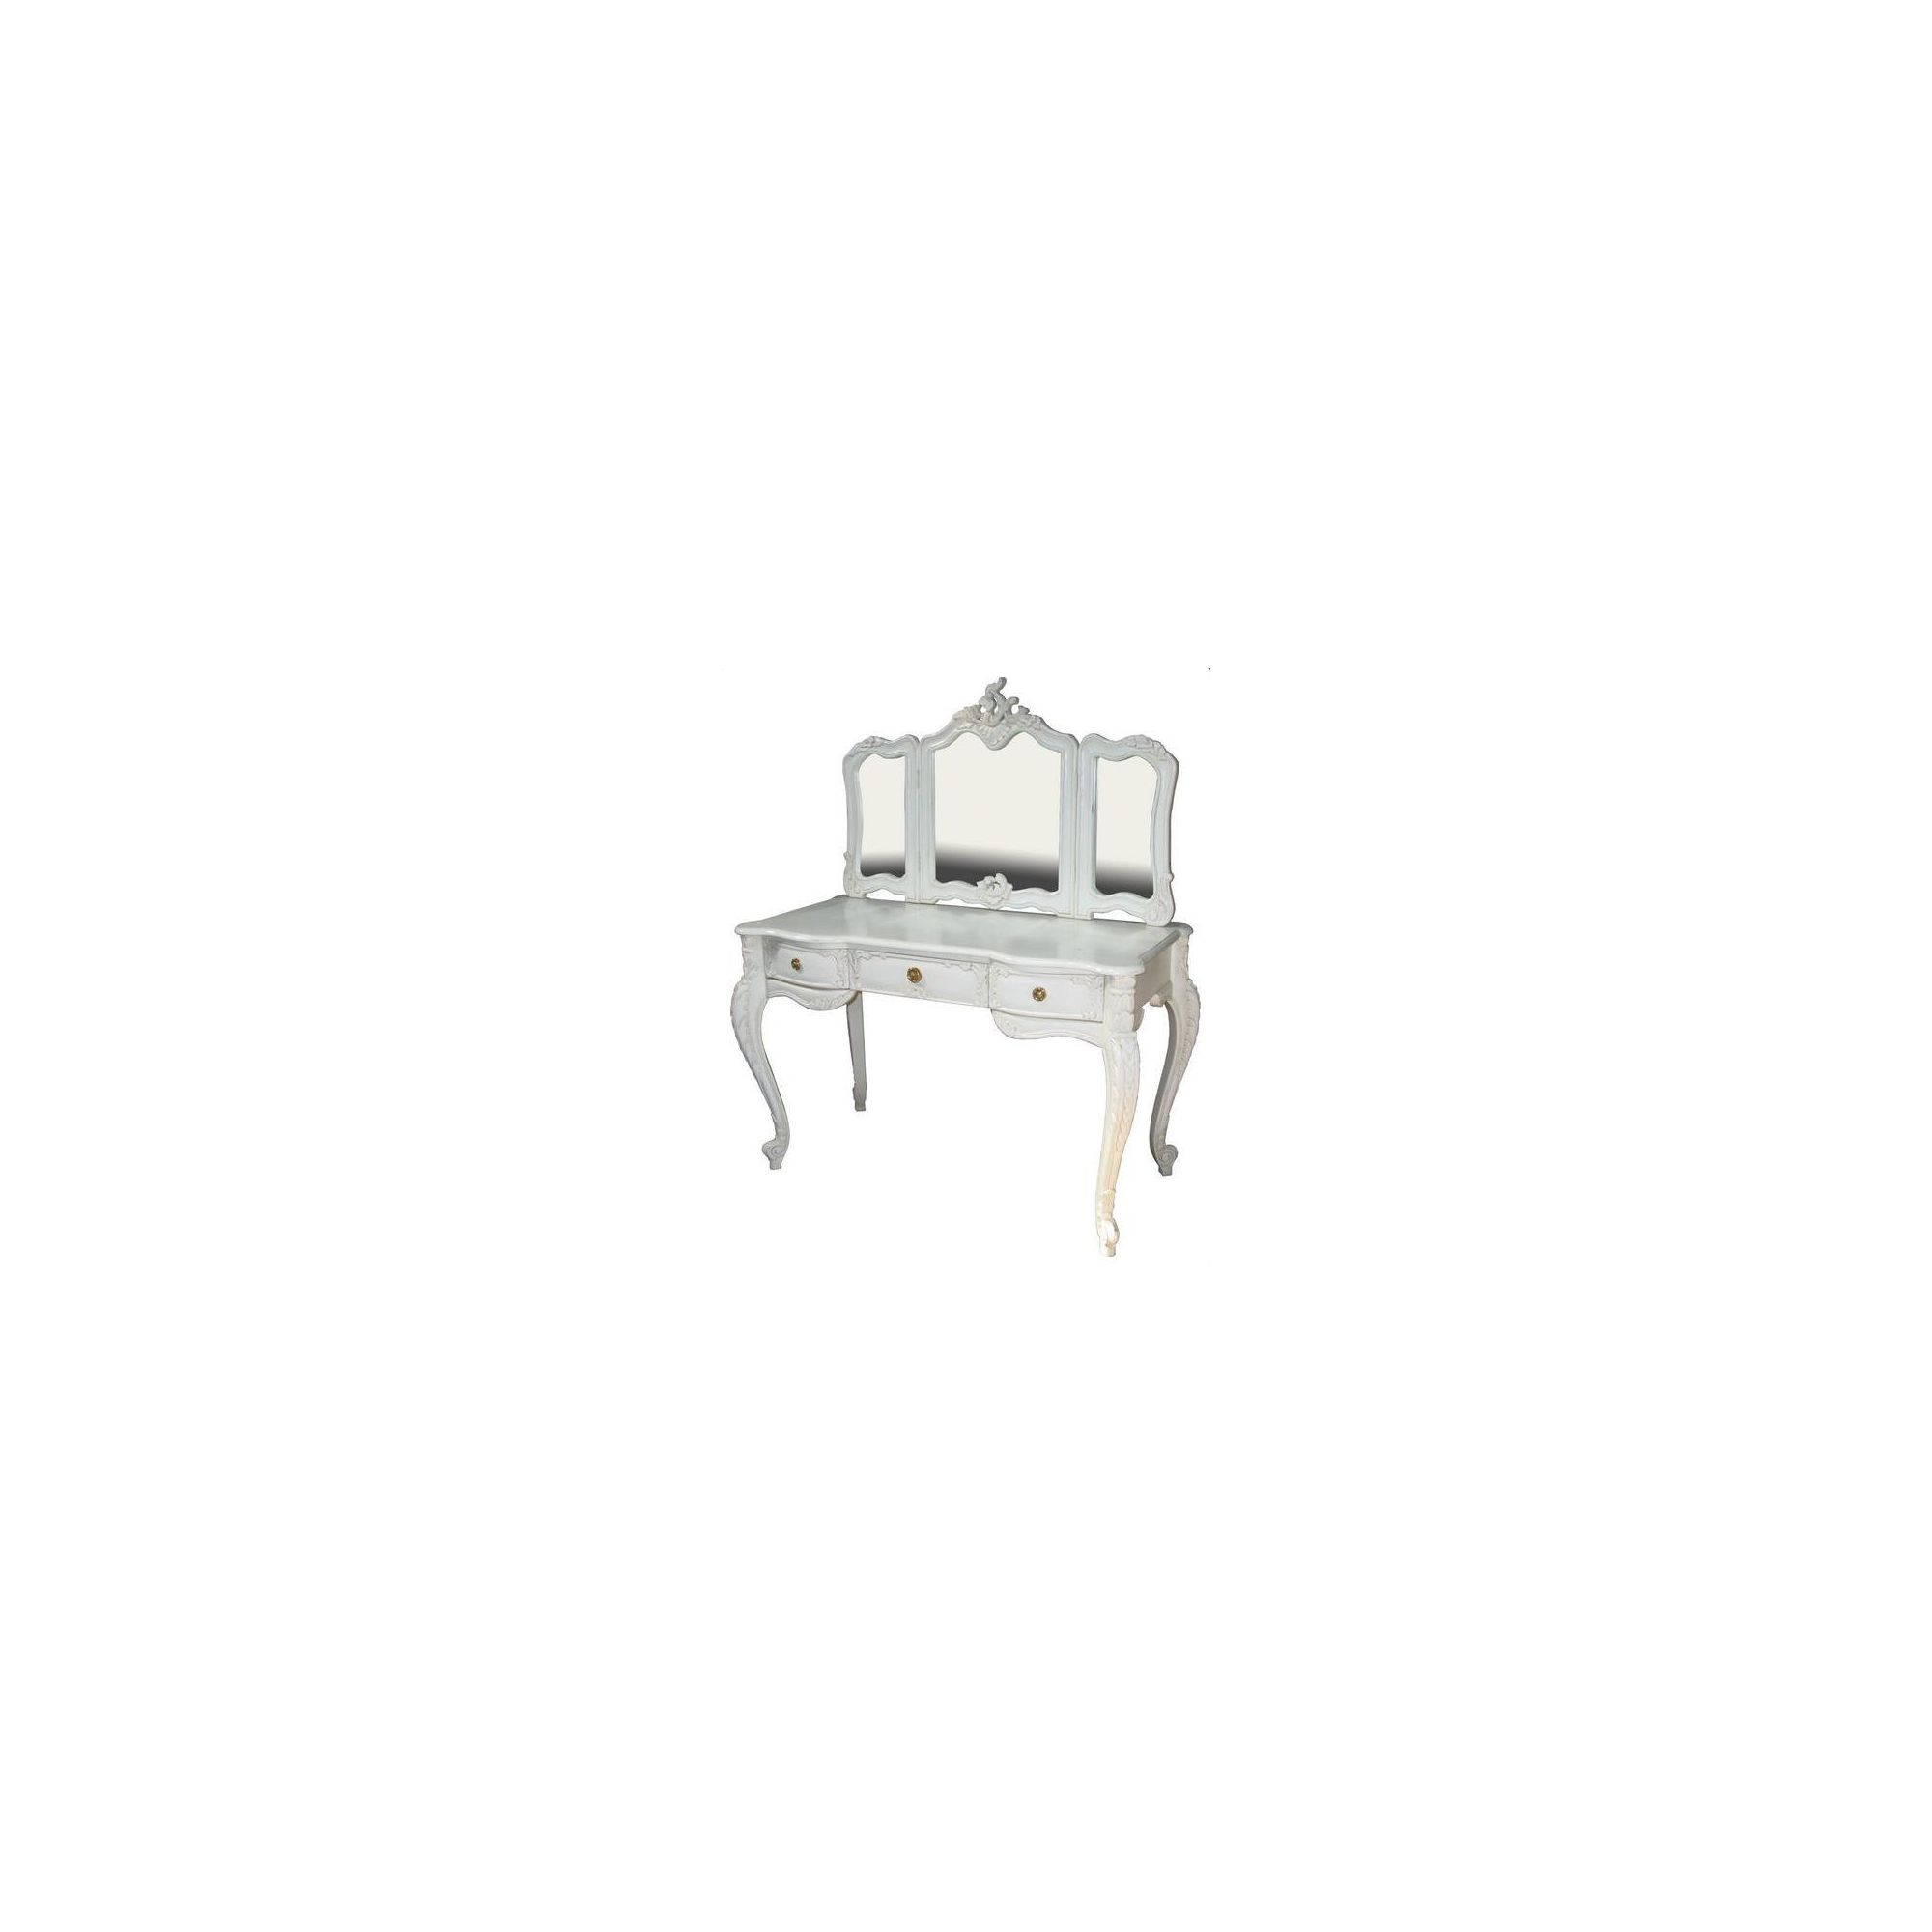 Lock stock and barrel Mahogany Rococo Dressing Table and Mirror in Mahogany - Antique White at Tesco Direct